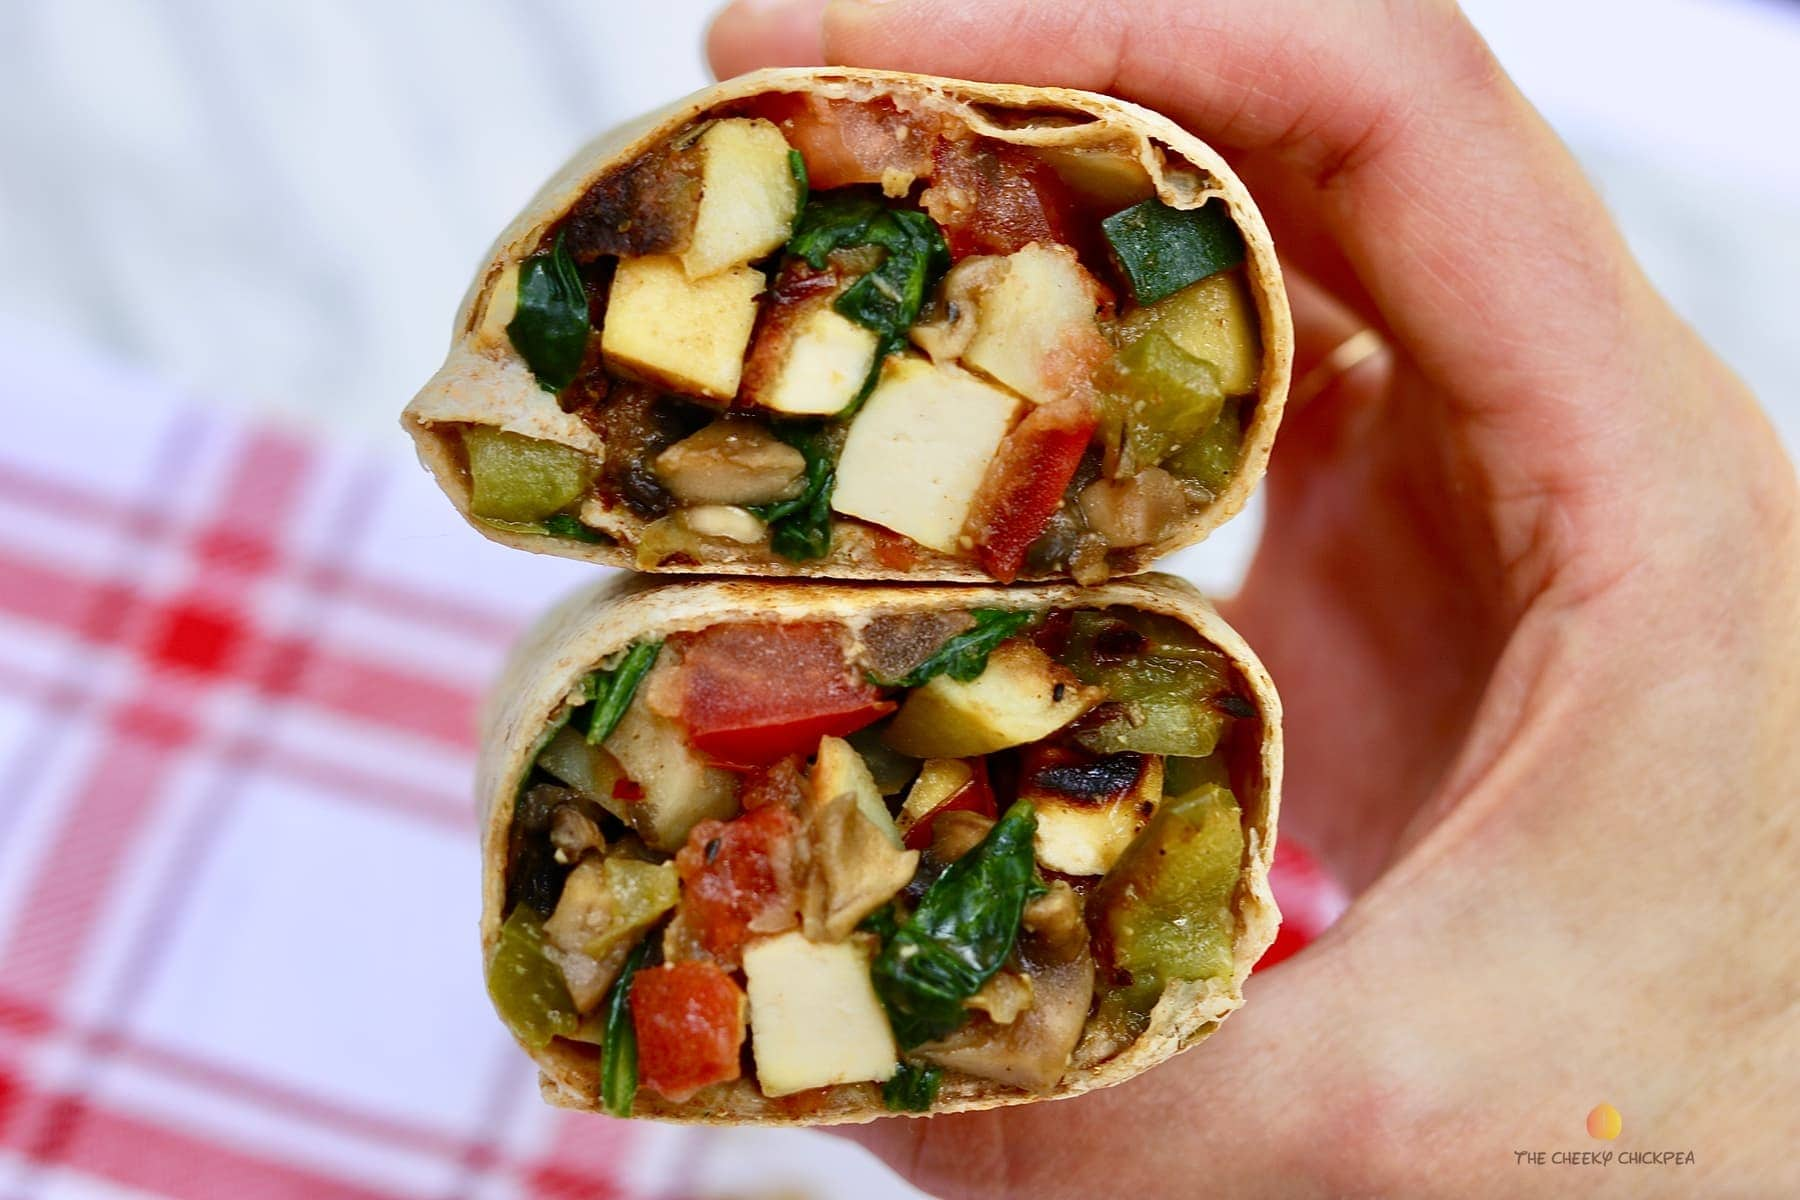 vegan breakfast burritos on a red and white dishcloth